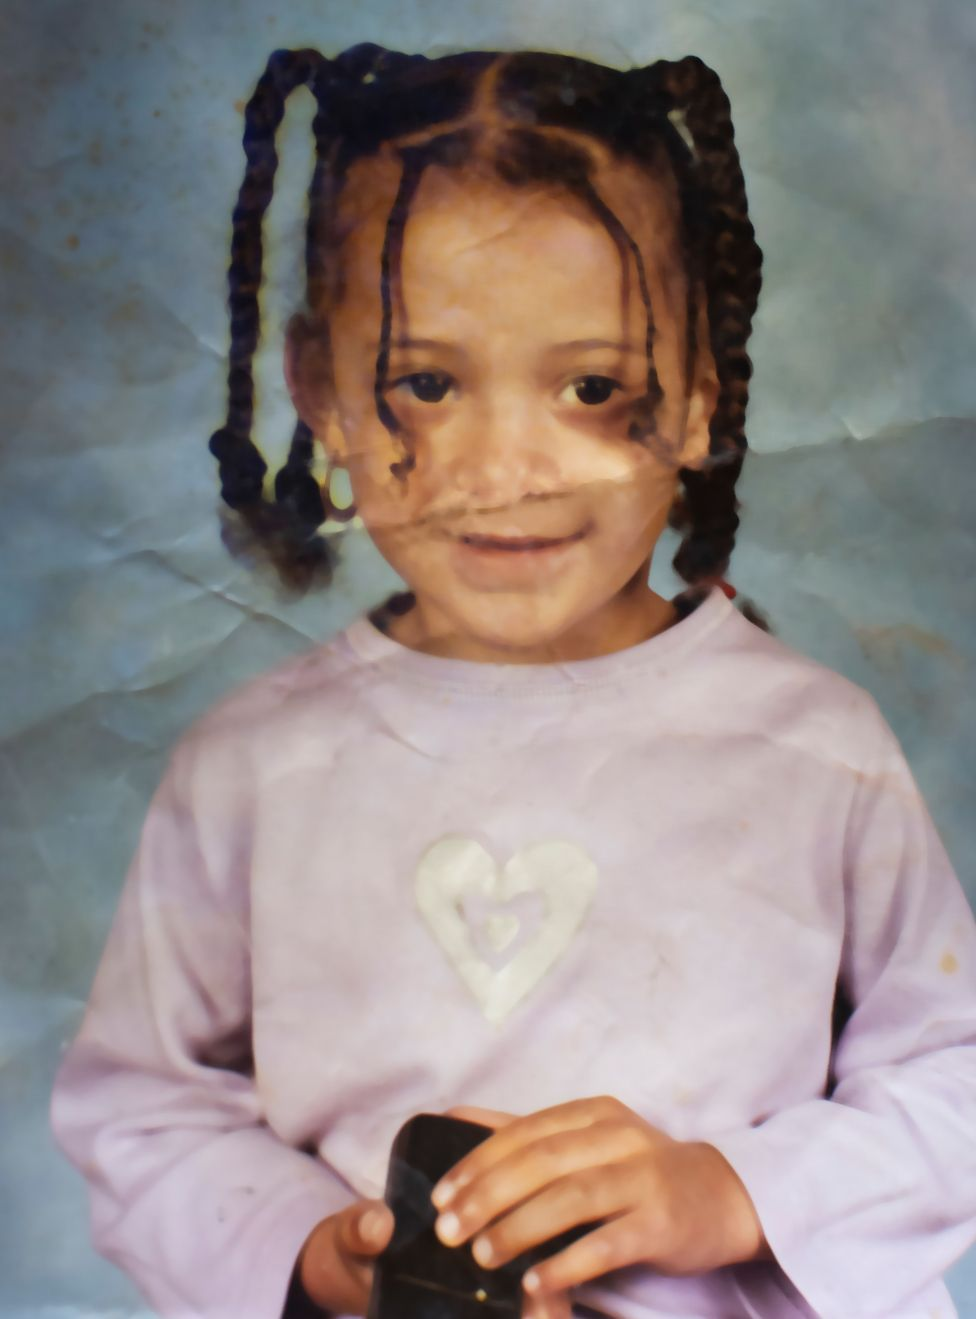 Aliyah as a child